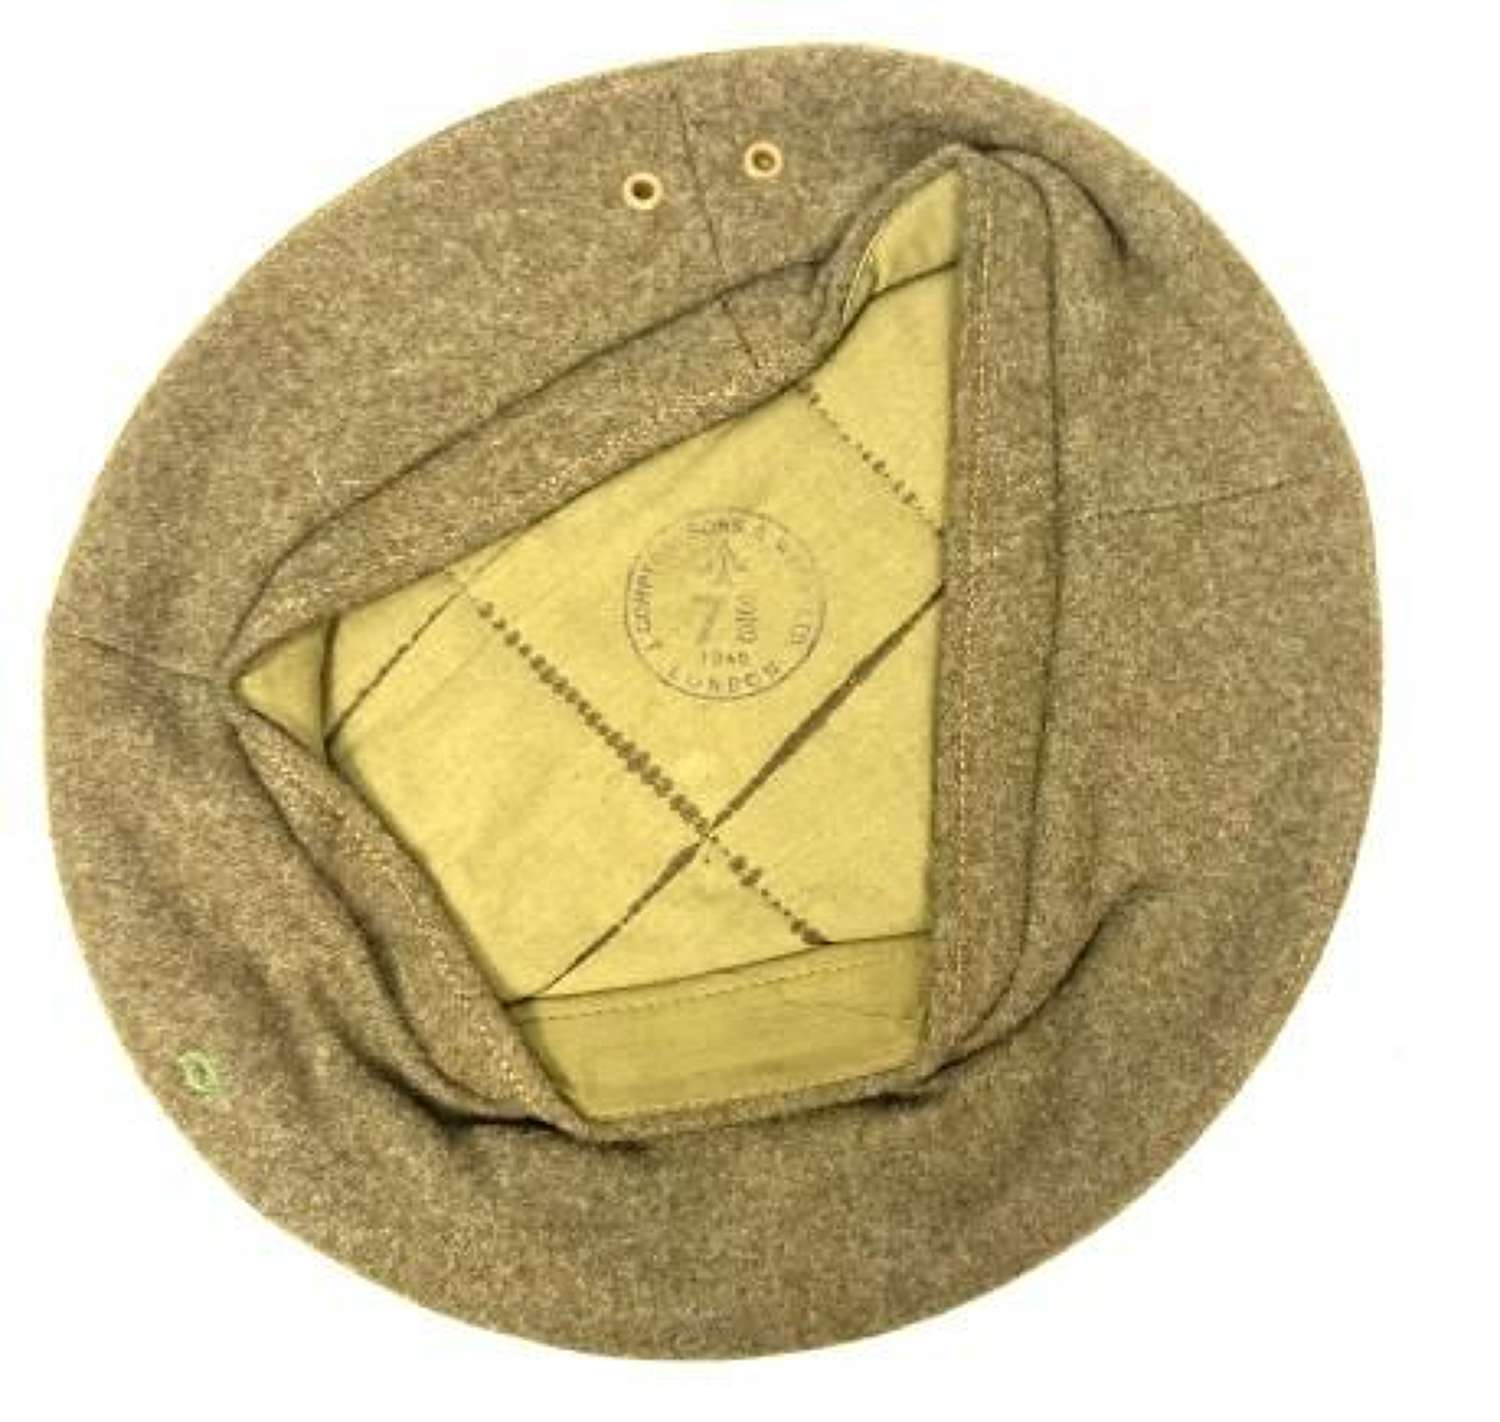 Original 1945 Dated British Army General Service Beret - Size 7 3/8